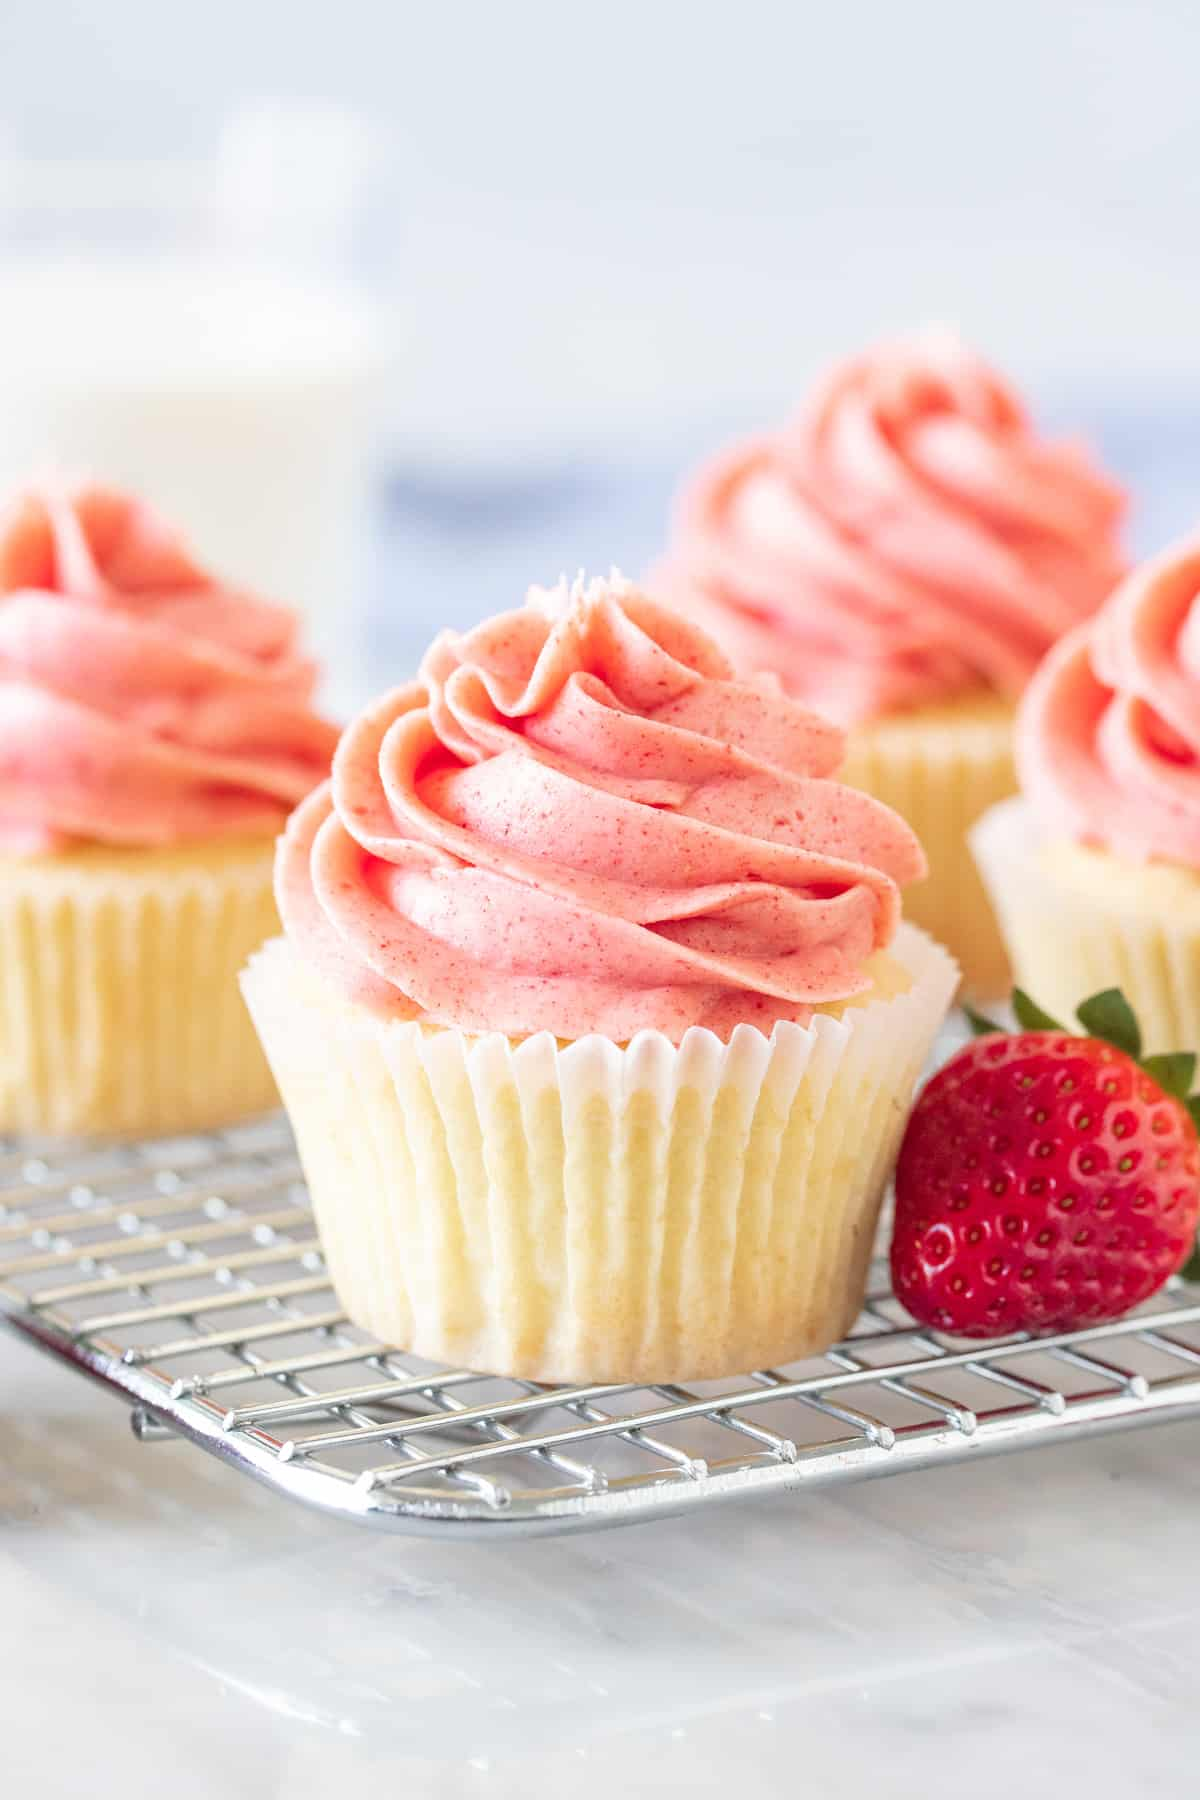 Vanilla cupcakes with strawberry frosting on a wire rack